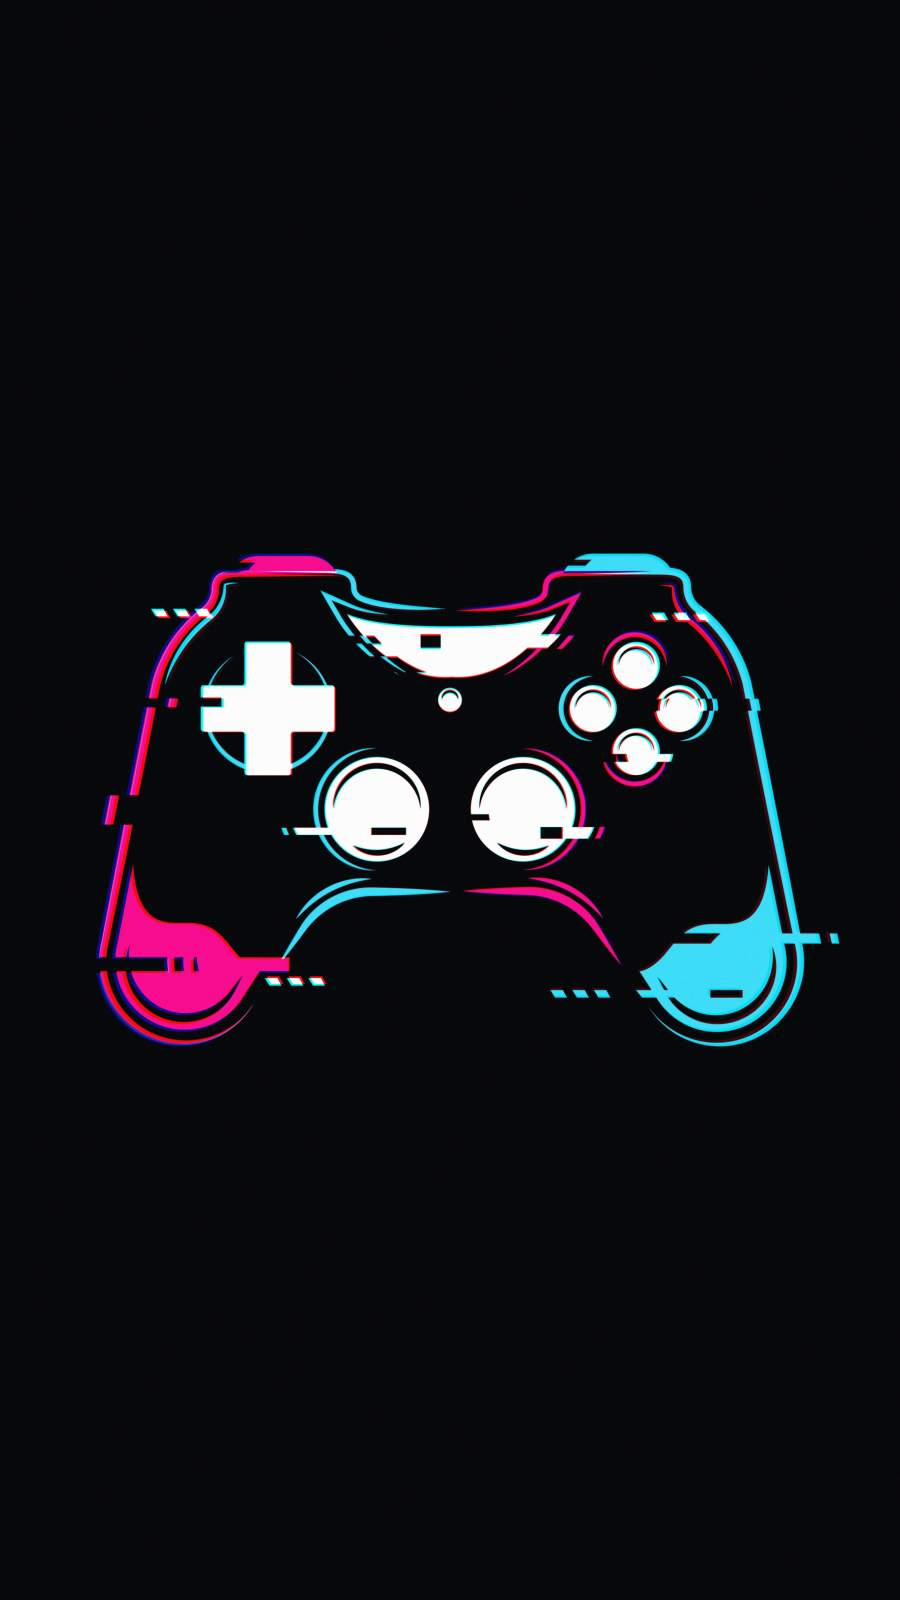 PS5 Controller iPhone Wallpaper